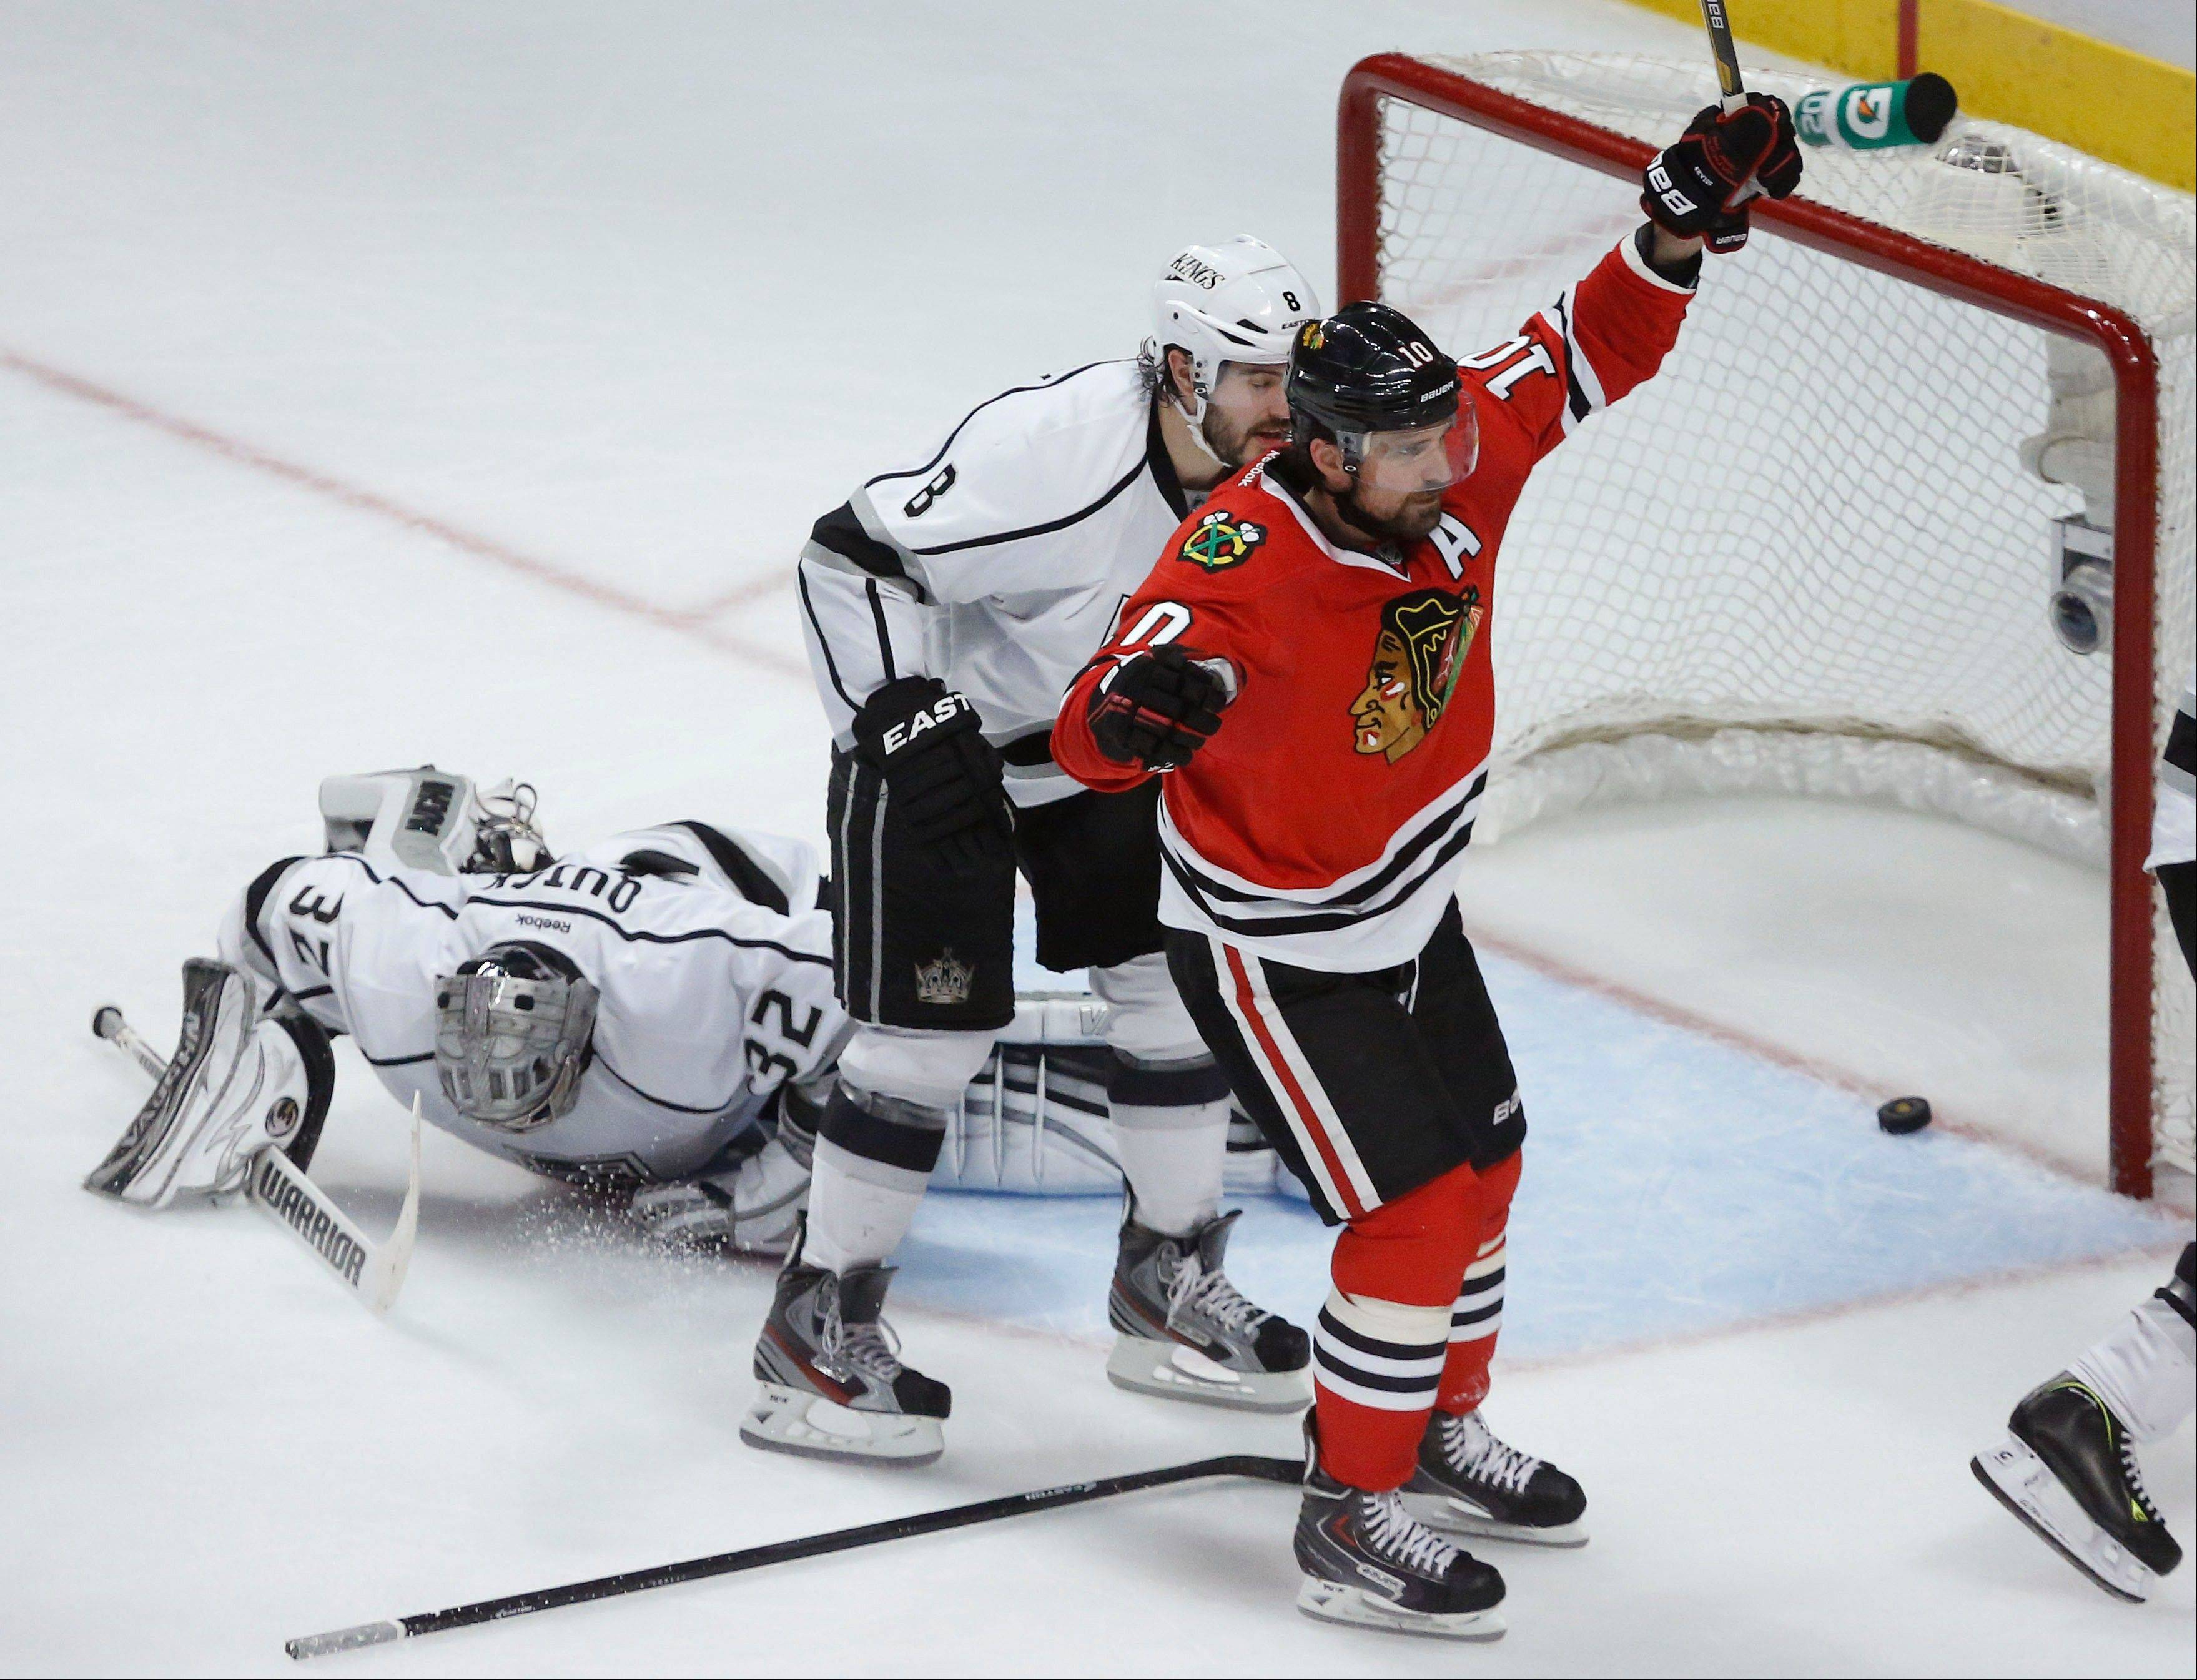 Chicago Blackhawks center Patrick Sharp (10) reacts after scoring a goal against Los Angeles Kings goalie Jonathan Quick (32) during the second period in Game 1 of the NHL hockey Stanley Cup Western Conference finals Saturday, June 1, 2013, in Chicago.